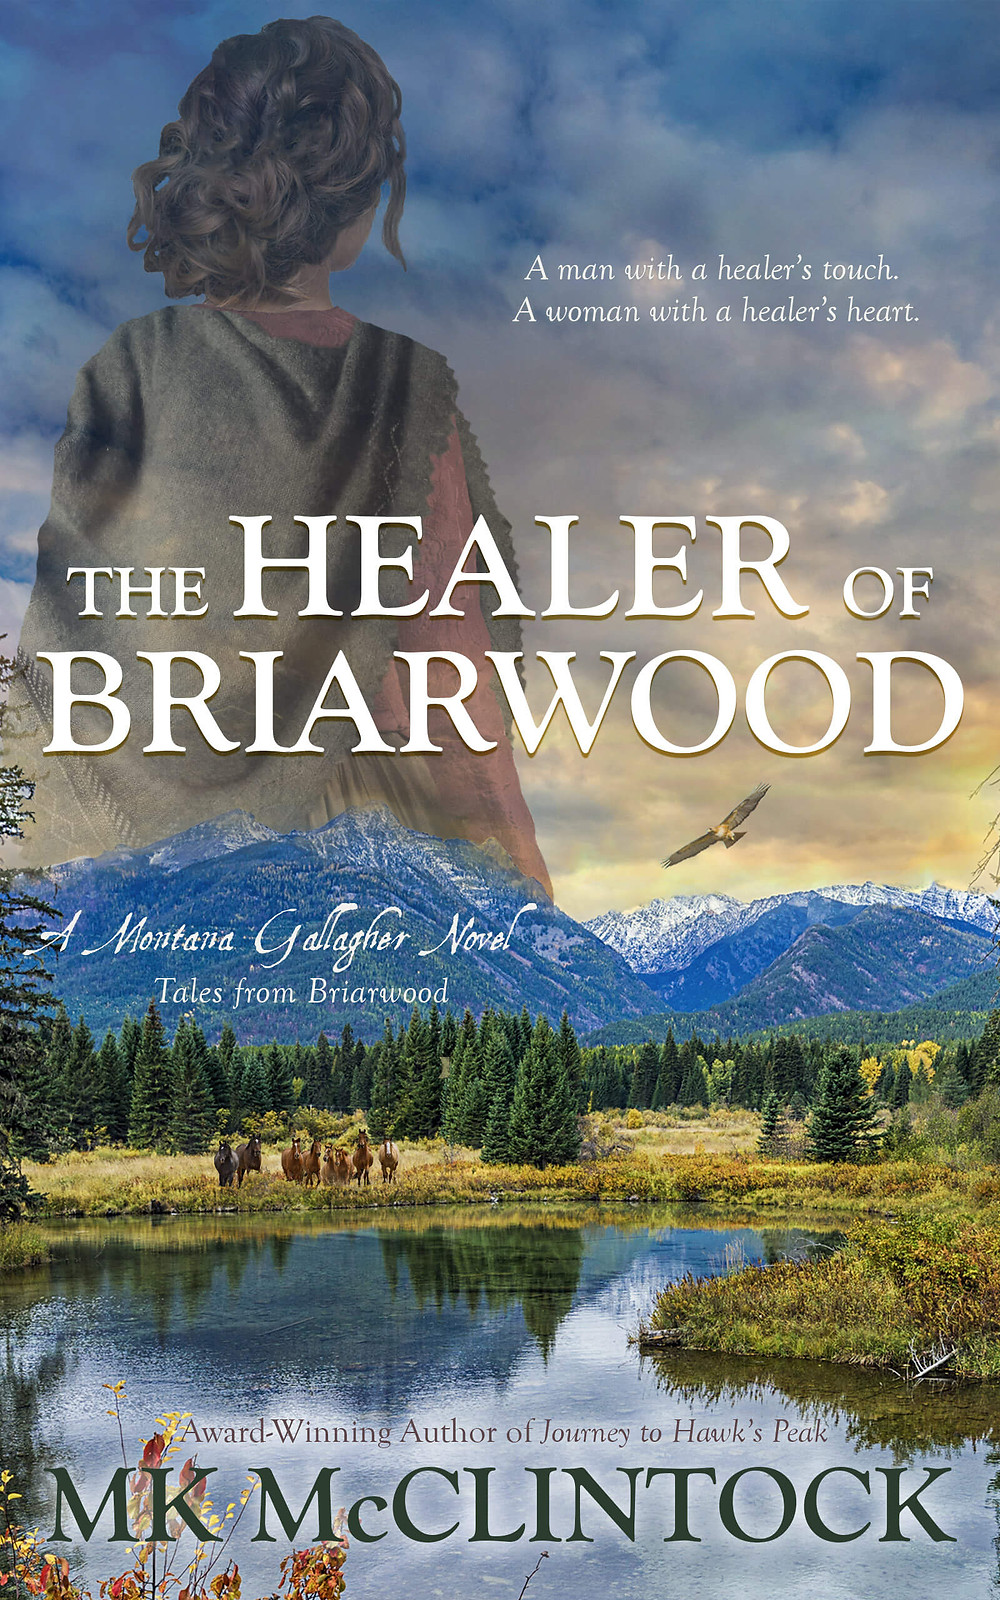 The Healer of Briarwood by MK McClintock